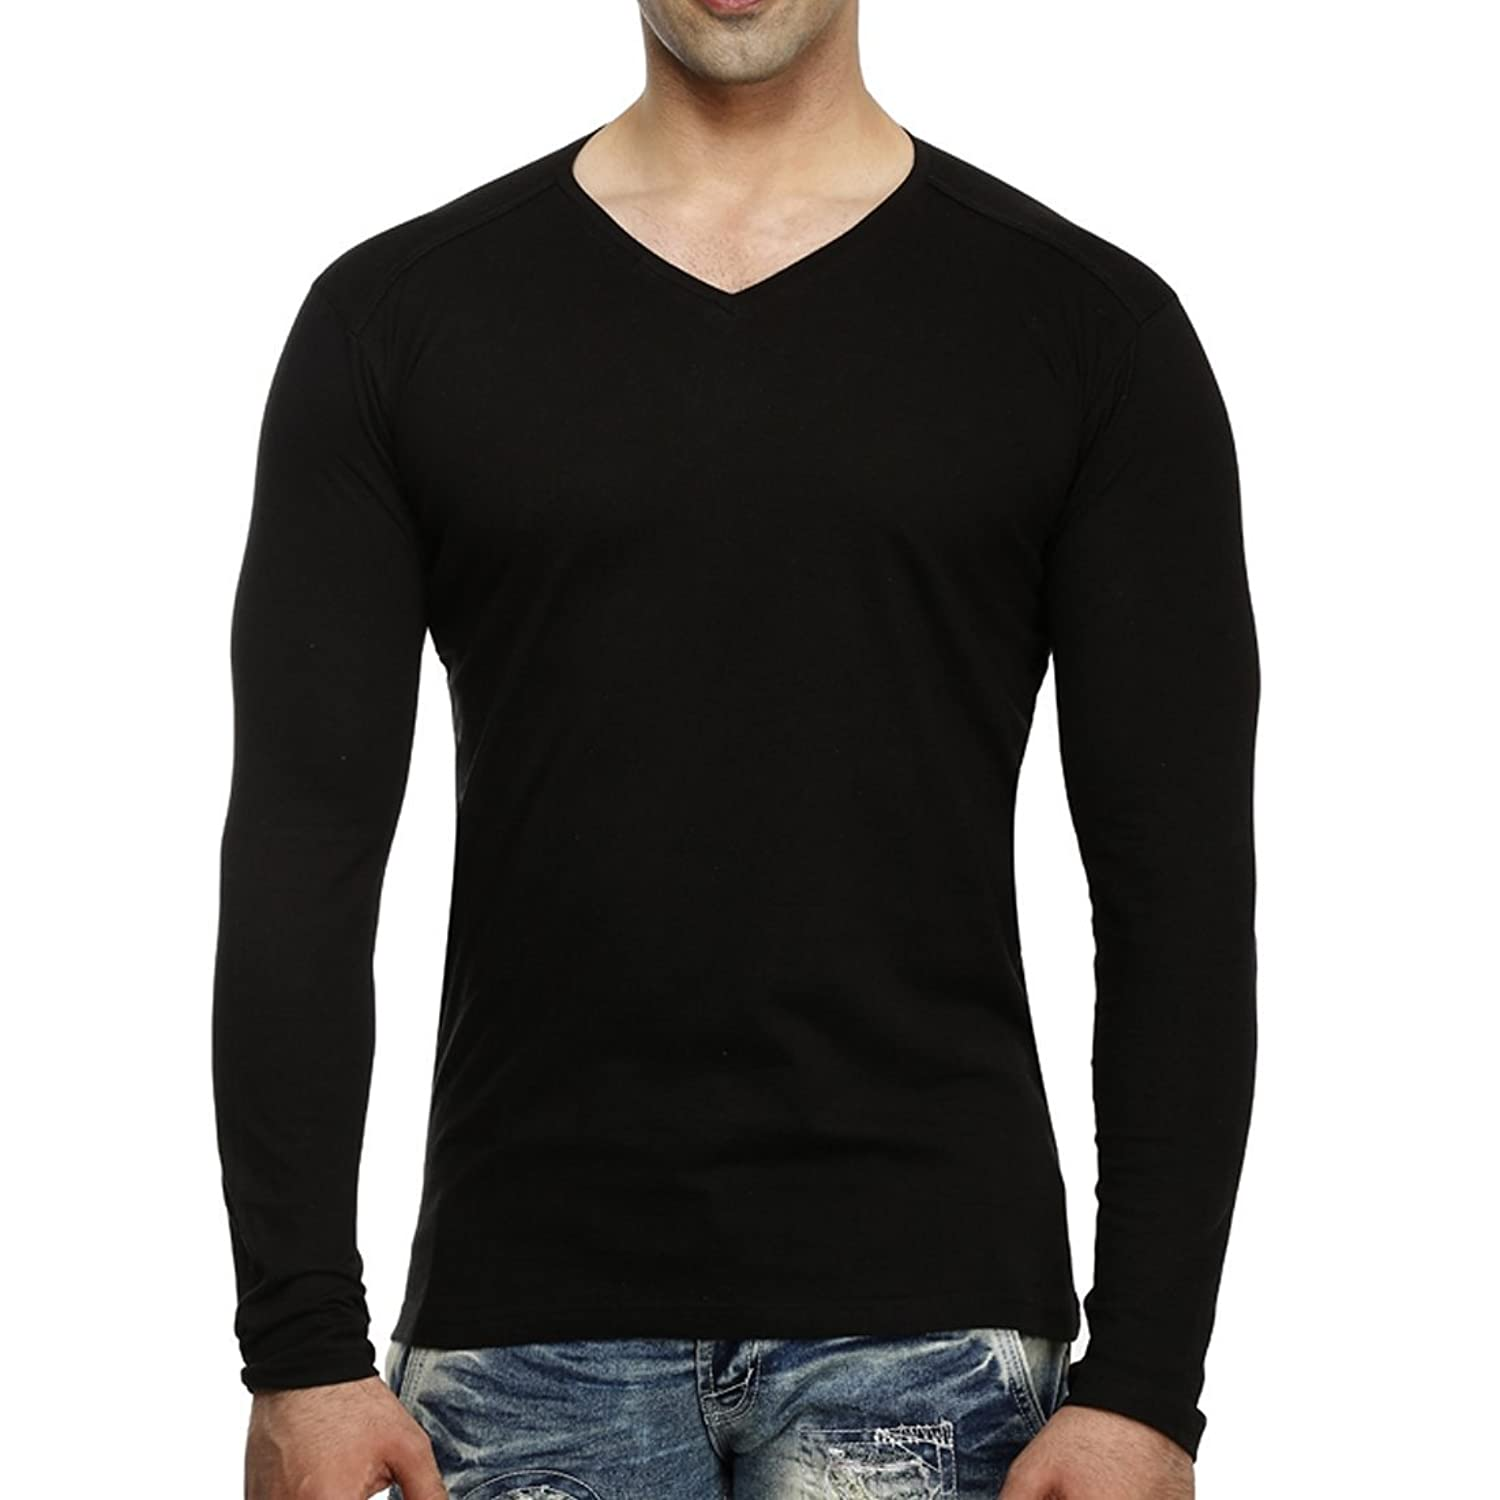 Black t shirt v shape - Tees Collection Men S V Neck Full Sleeve Cotton T Shirt